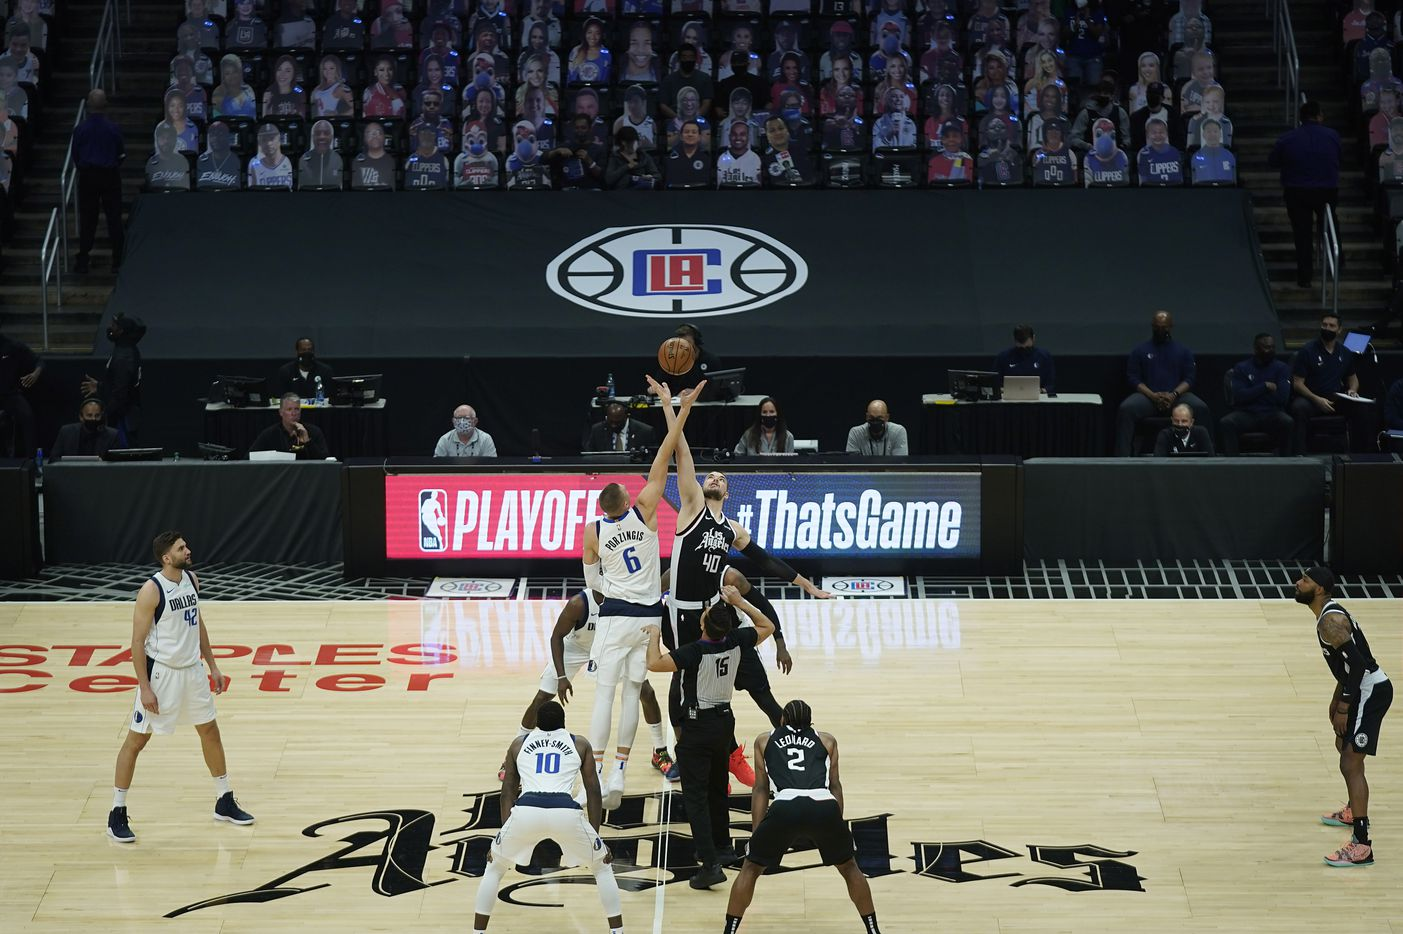 Dallas Mavericks center Kristaps Porzingis (6) goes up for the opening tipoff against LA Clippers center Ivica Zubac (40) during the first half of an NBA playoff basketball game at Staples Center on Saturday, May 22, 2021, in Los Angeles.